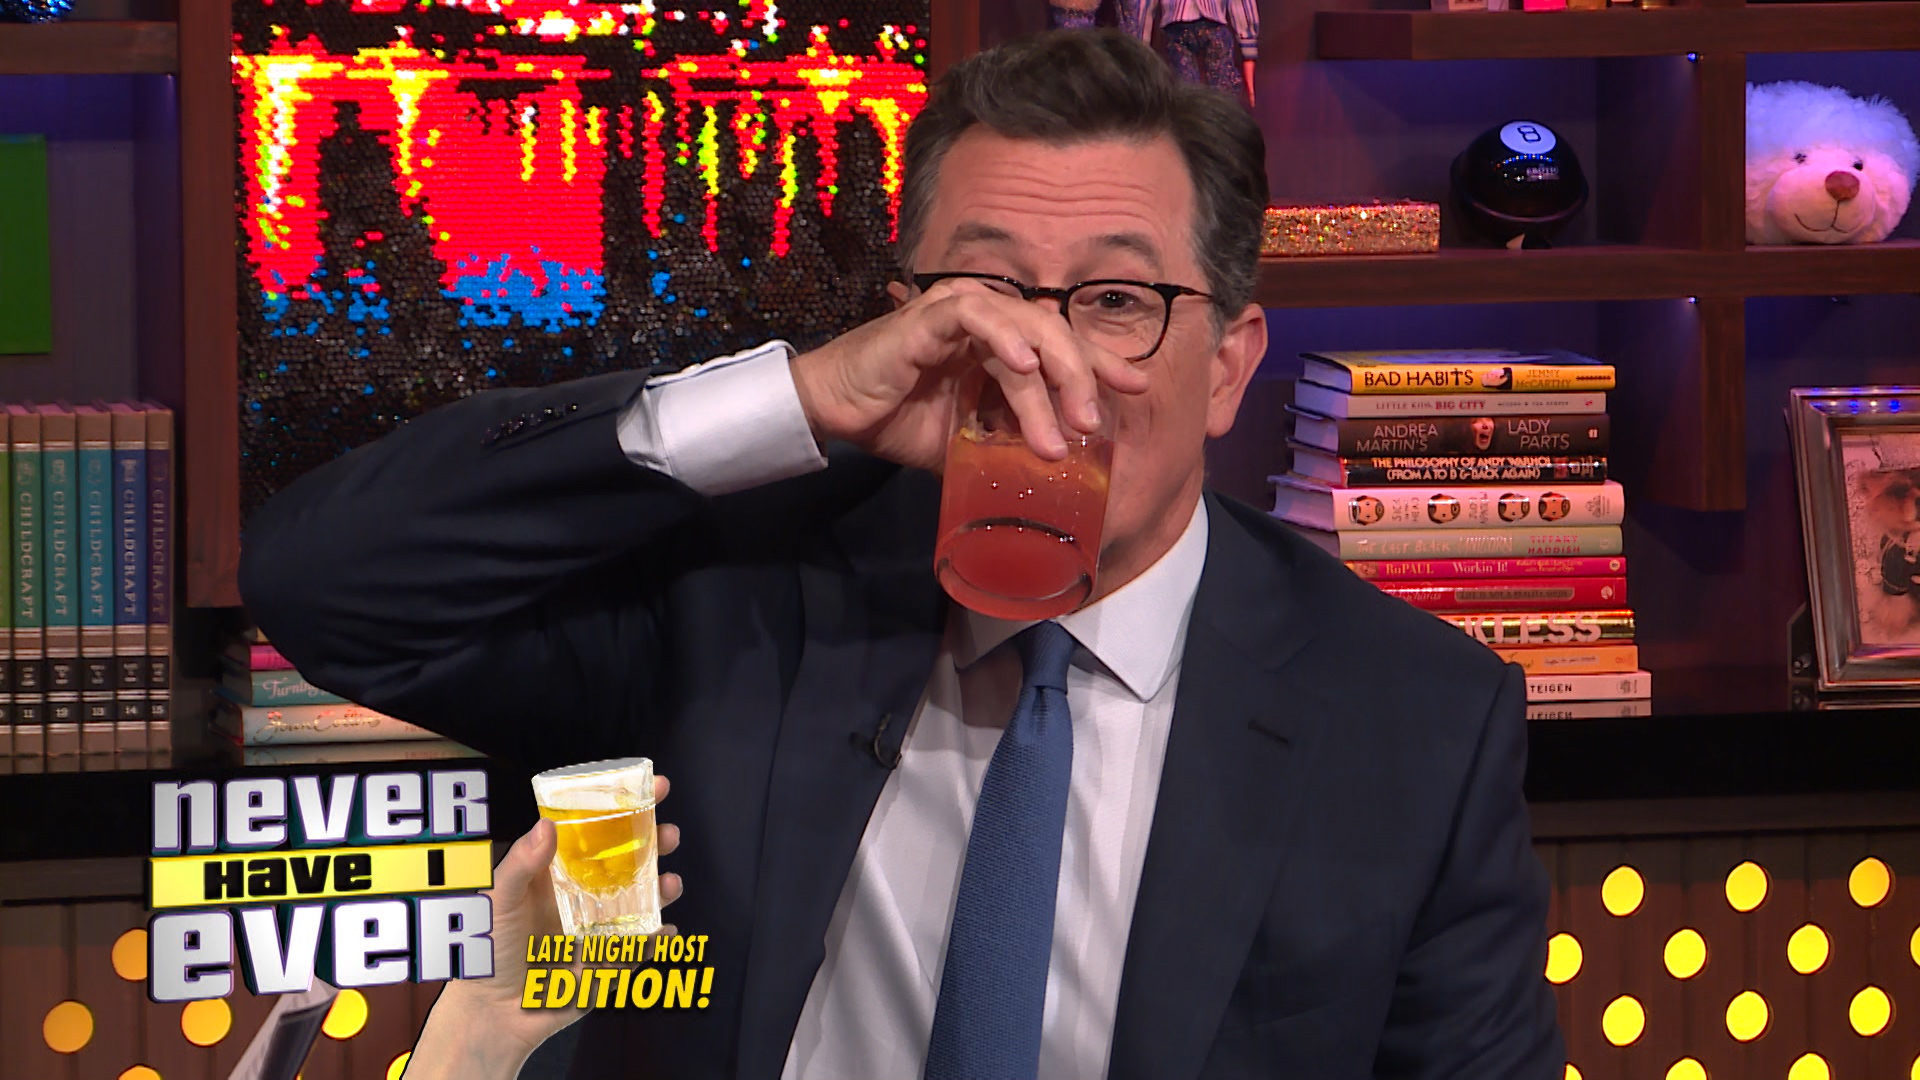 Stephen Colbert Plays Never Have I Ever, Late Night Host Edition!